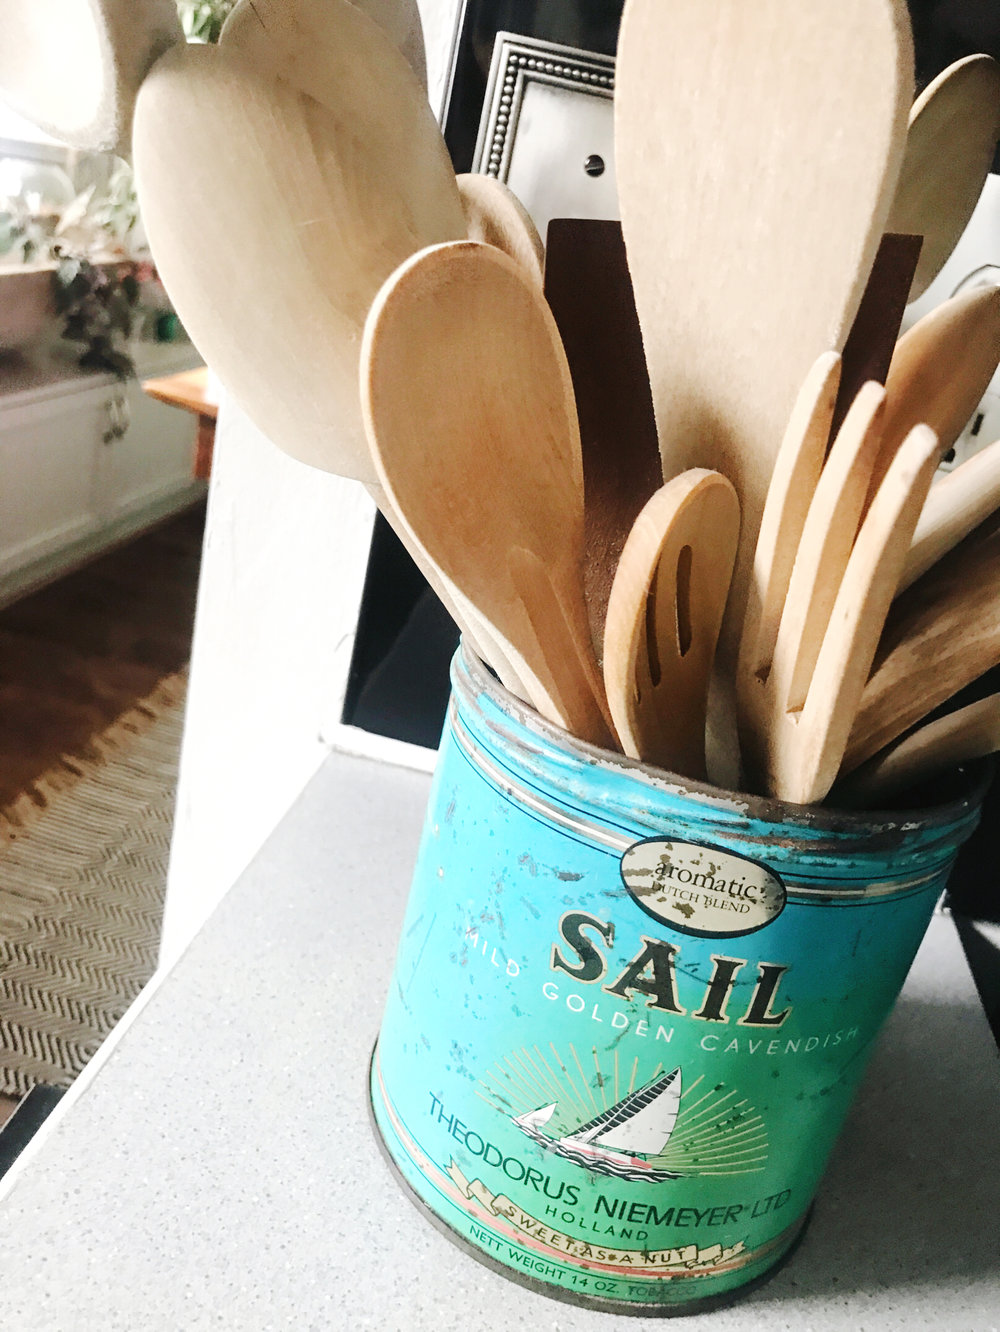 Vintage canister as a kitchen utensil holder | hprallandco.com | H.Prall & Co. Interior Decorating, Des Moines, IA